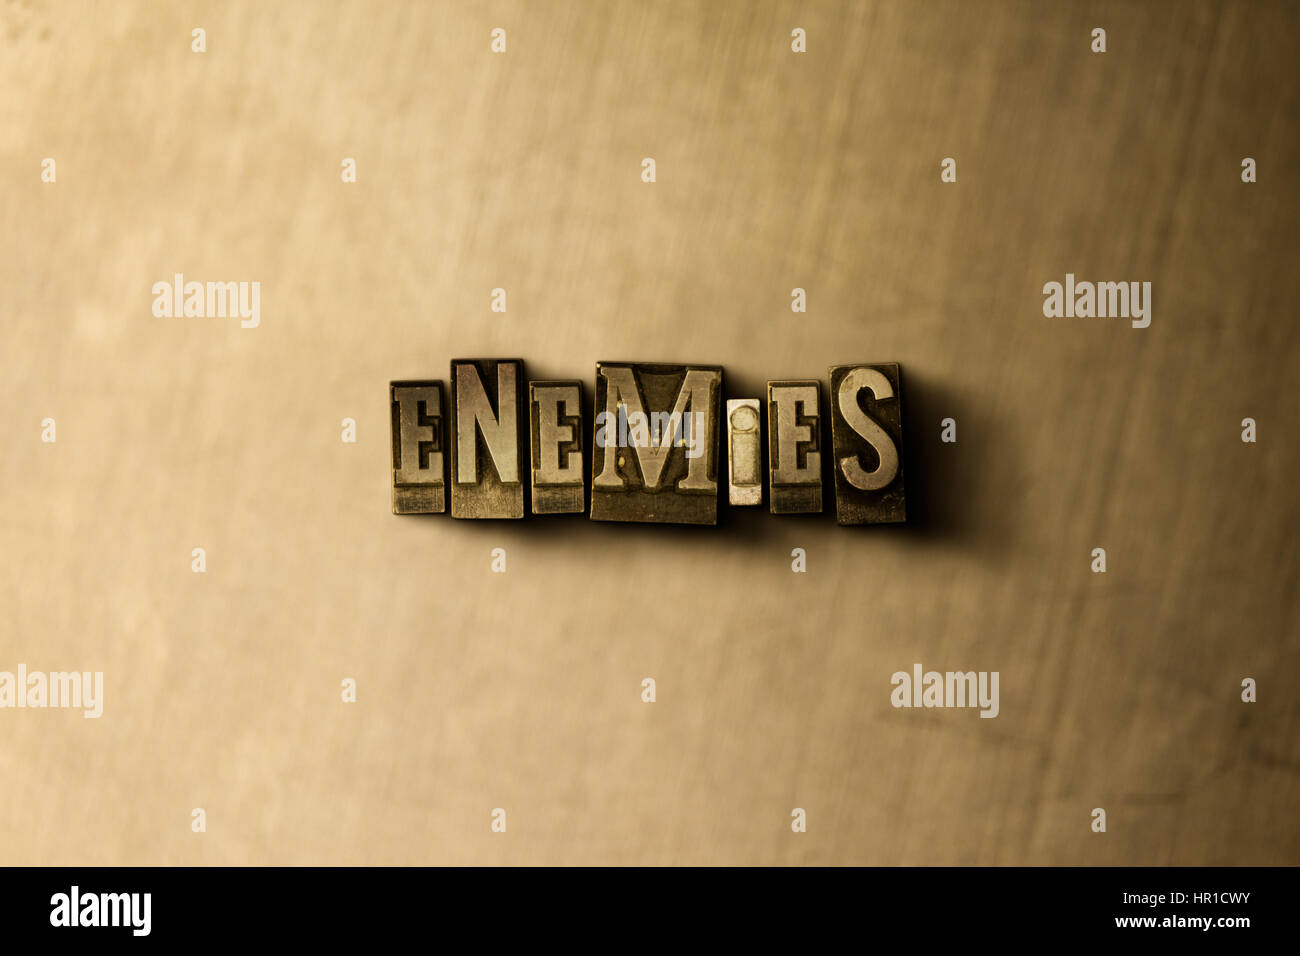 ENEMIES - close-up of grungy vintage typeset word on metal backdrop. Royalty free stock - 3D rendered stock image. - Stock Image